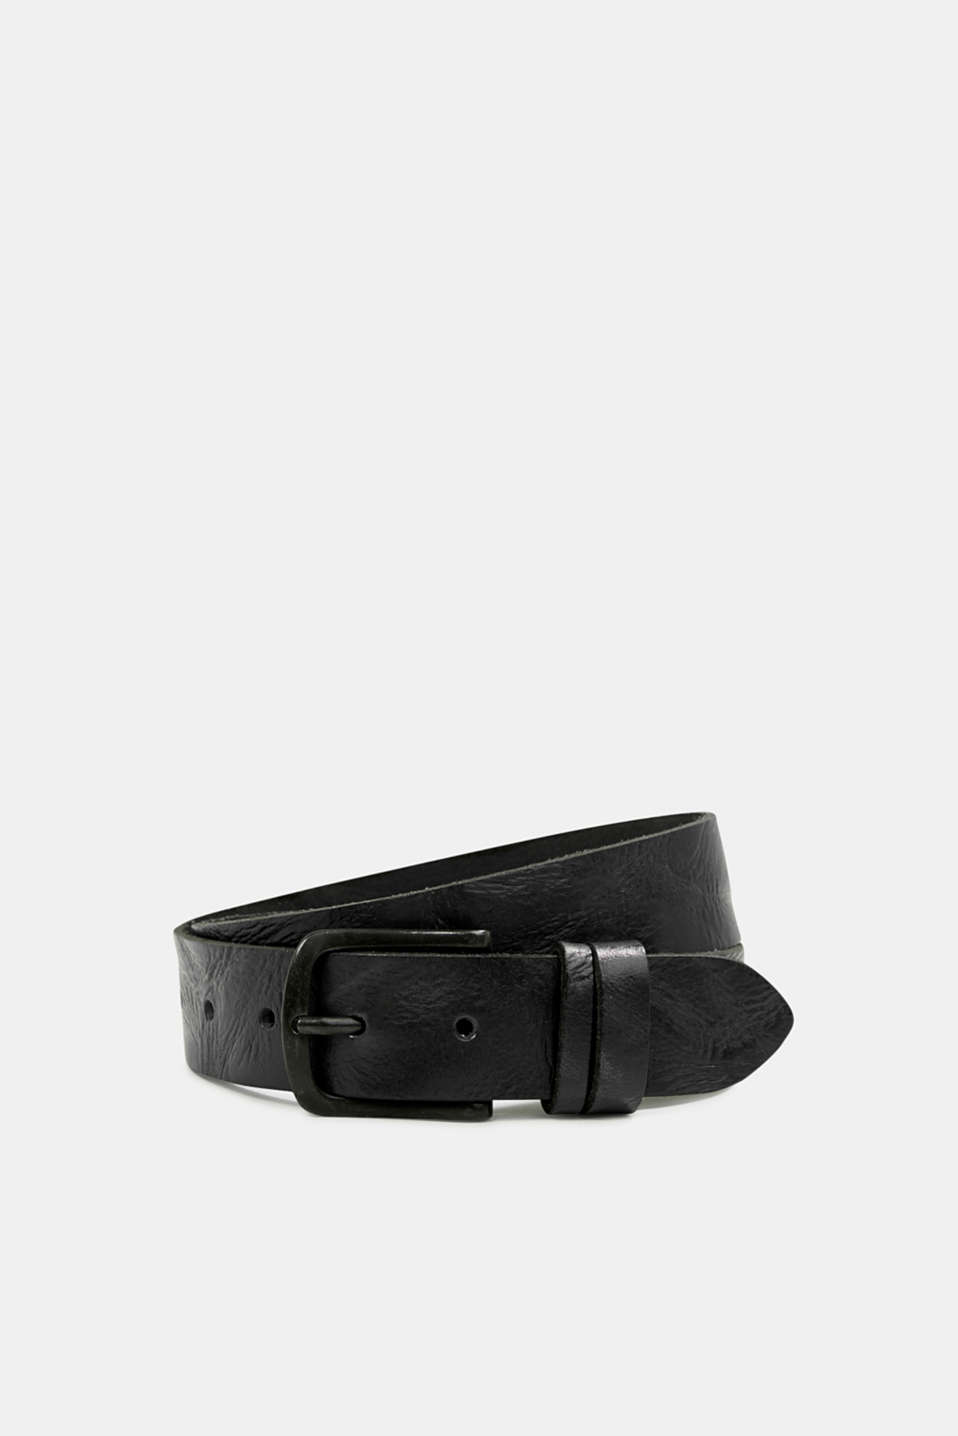 Esprit - Belt in robust leather